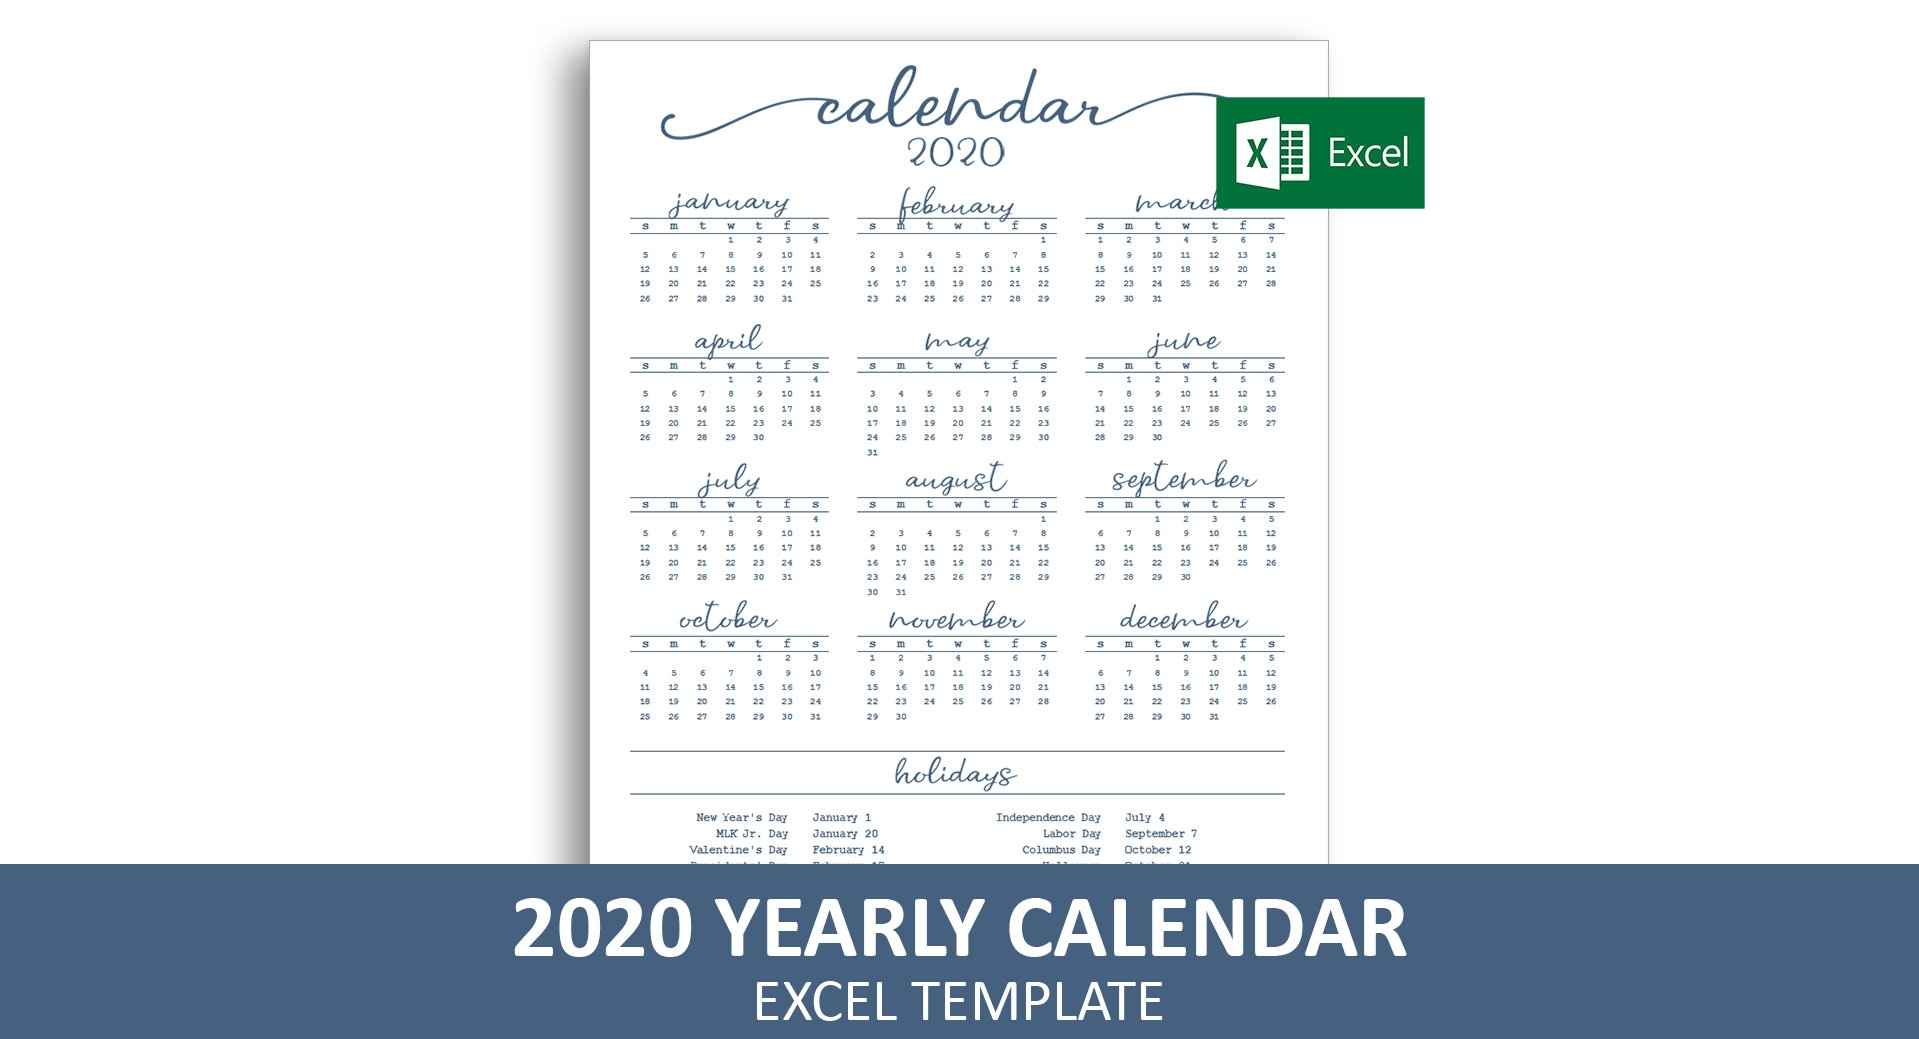 Elegant Yearly Calendar 2020 Excel Template Printable | Etsy with Calendar 2020 Excell Romania